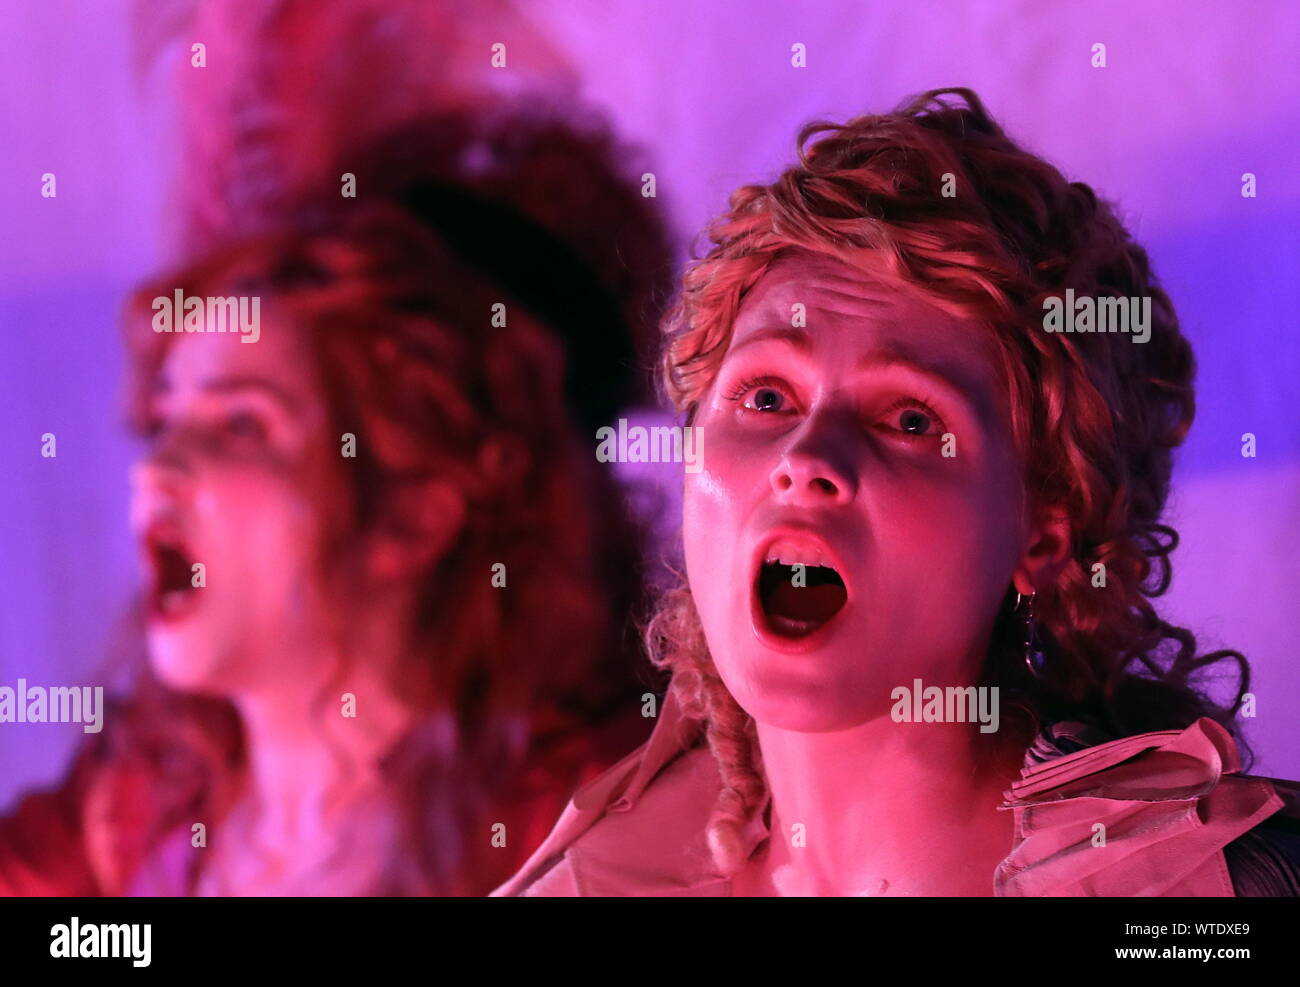 Moscow, Russia. 11th Sep, 2019. MOSCOW, RUSSIA - SEPTEMBER 11, 2019: Singer Yulia Khotay (R) as Procris performs in a scene from the opera production of Cephalus and Procris staged at the Patriarch's Palace of the Moscow Kremlin as part of the 2nd Music Festival Tsars and Muses - Opera at the Russian Court. Sergei Karpukhin/TASS Credit: ITAR-TASS News Agency/Alamy Live News Stock Photo